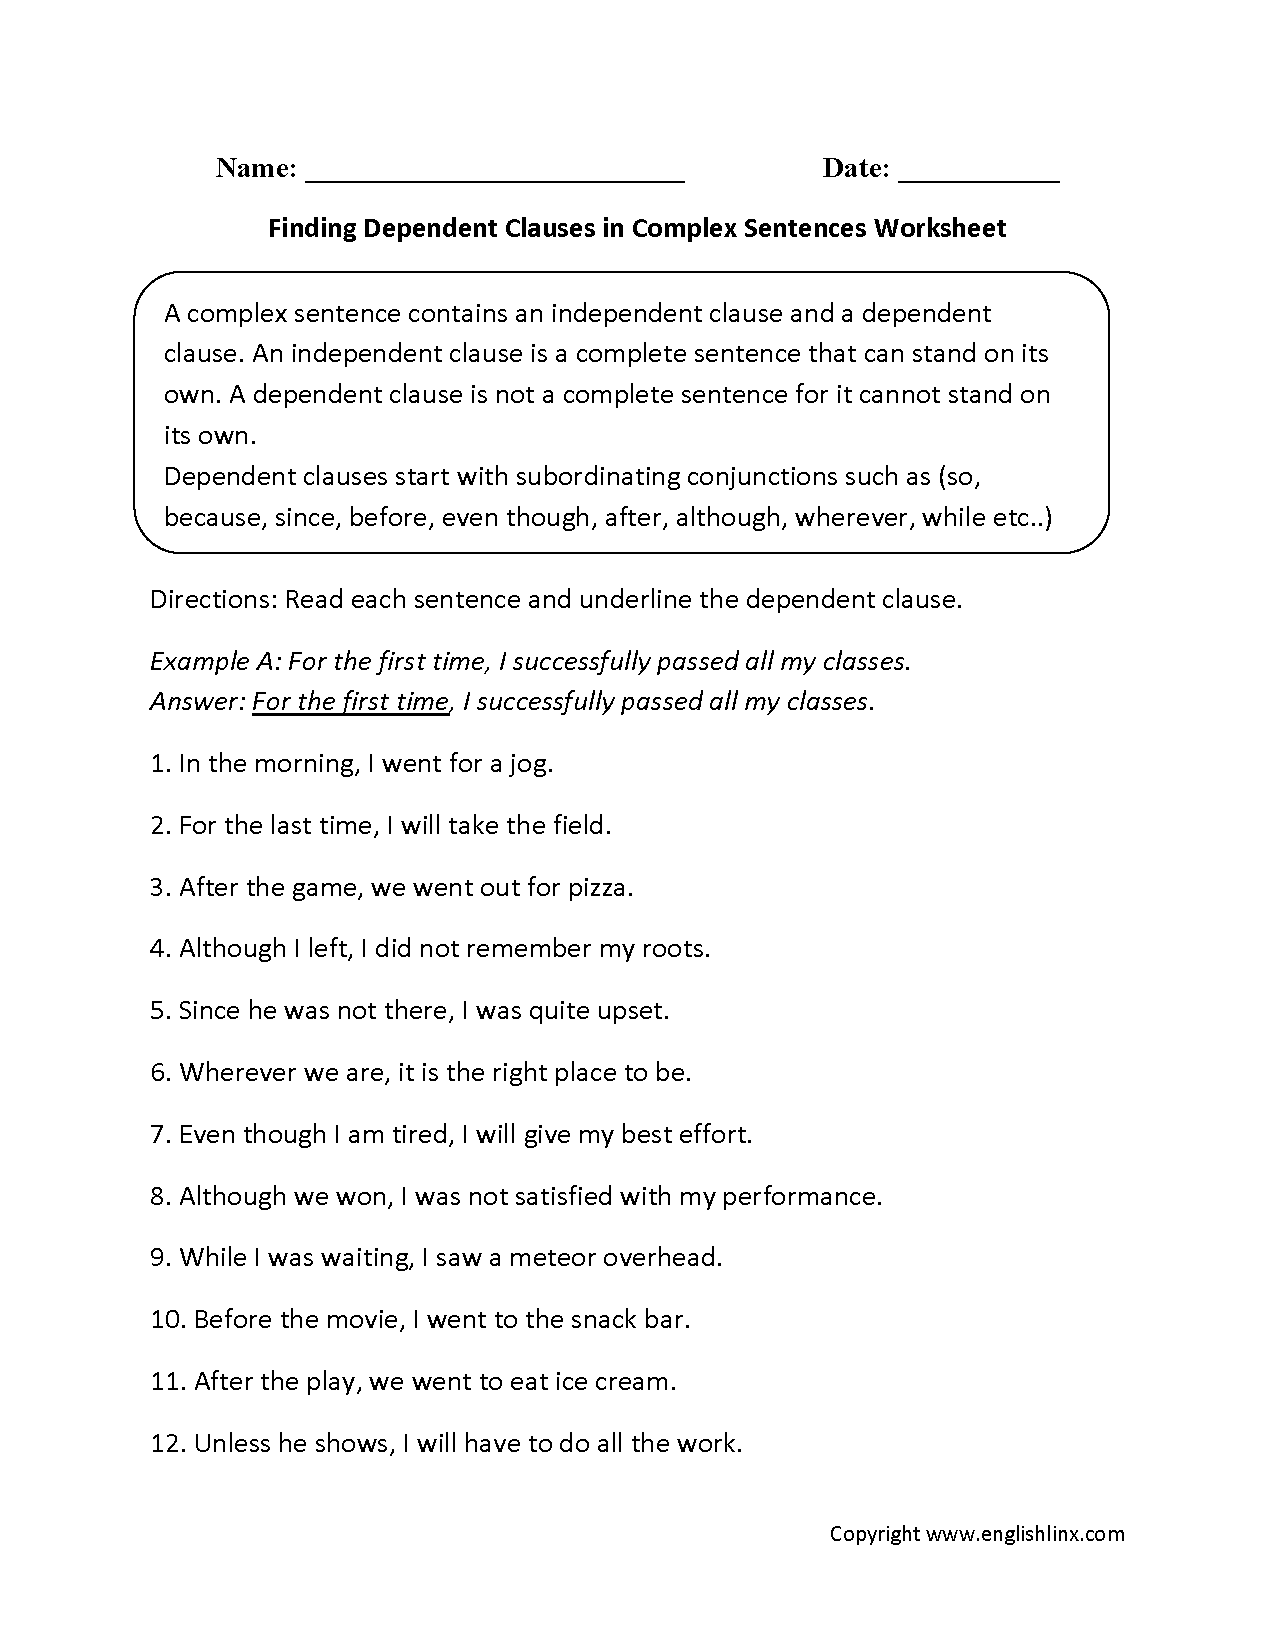 Finding Dependent Clauses Complex Sentences Worksheets